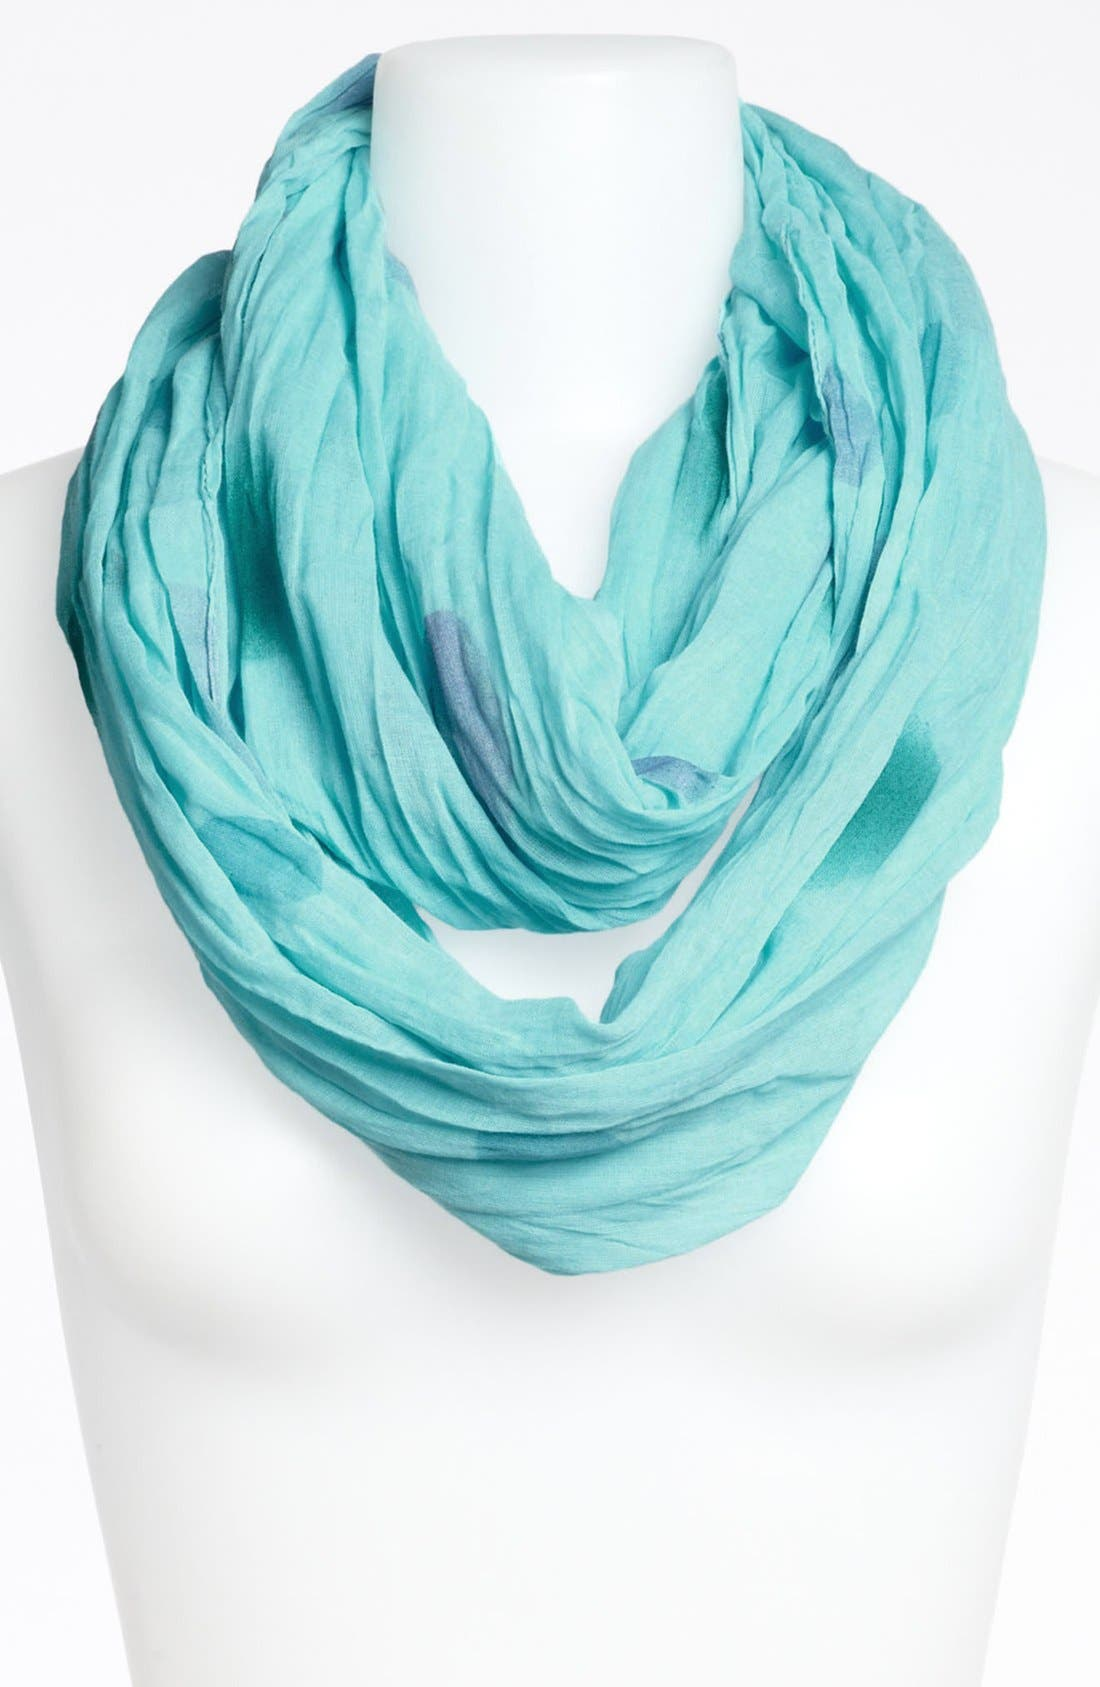 Main Image - Made of Me Accessories 'Bright Lights Loop' Infinity Scarf